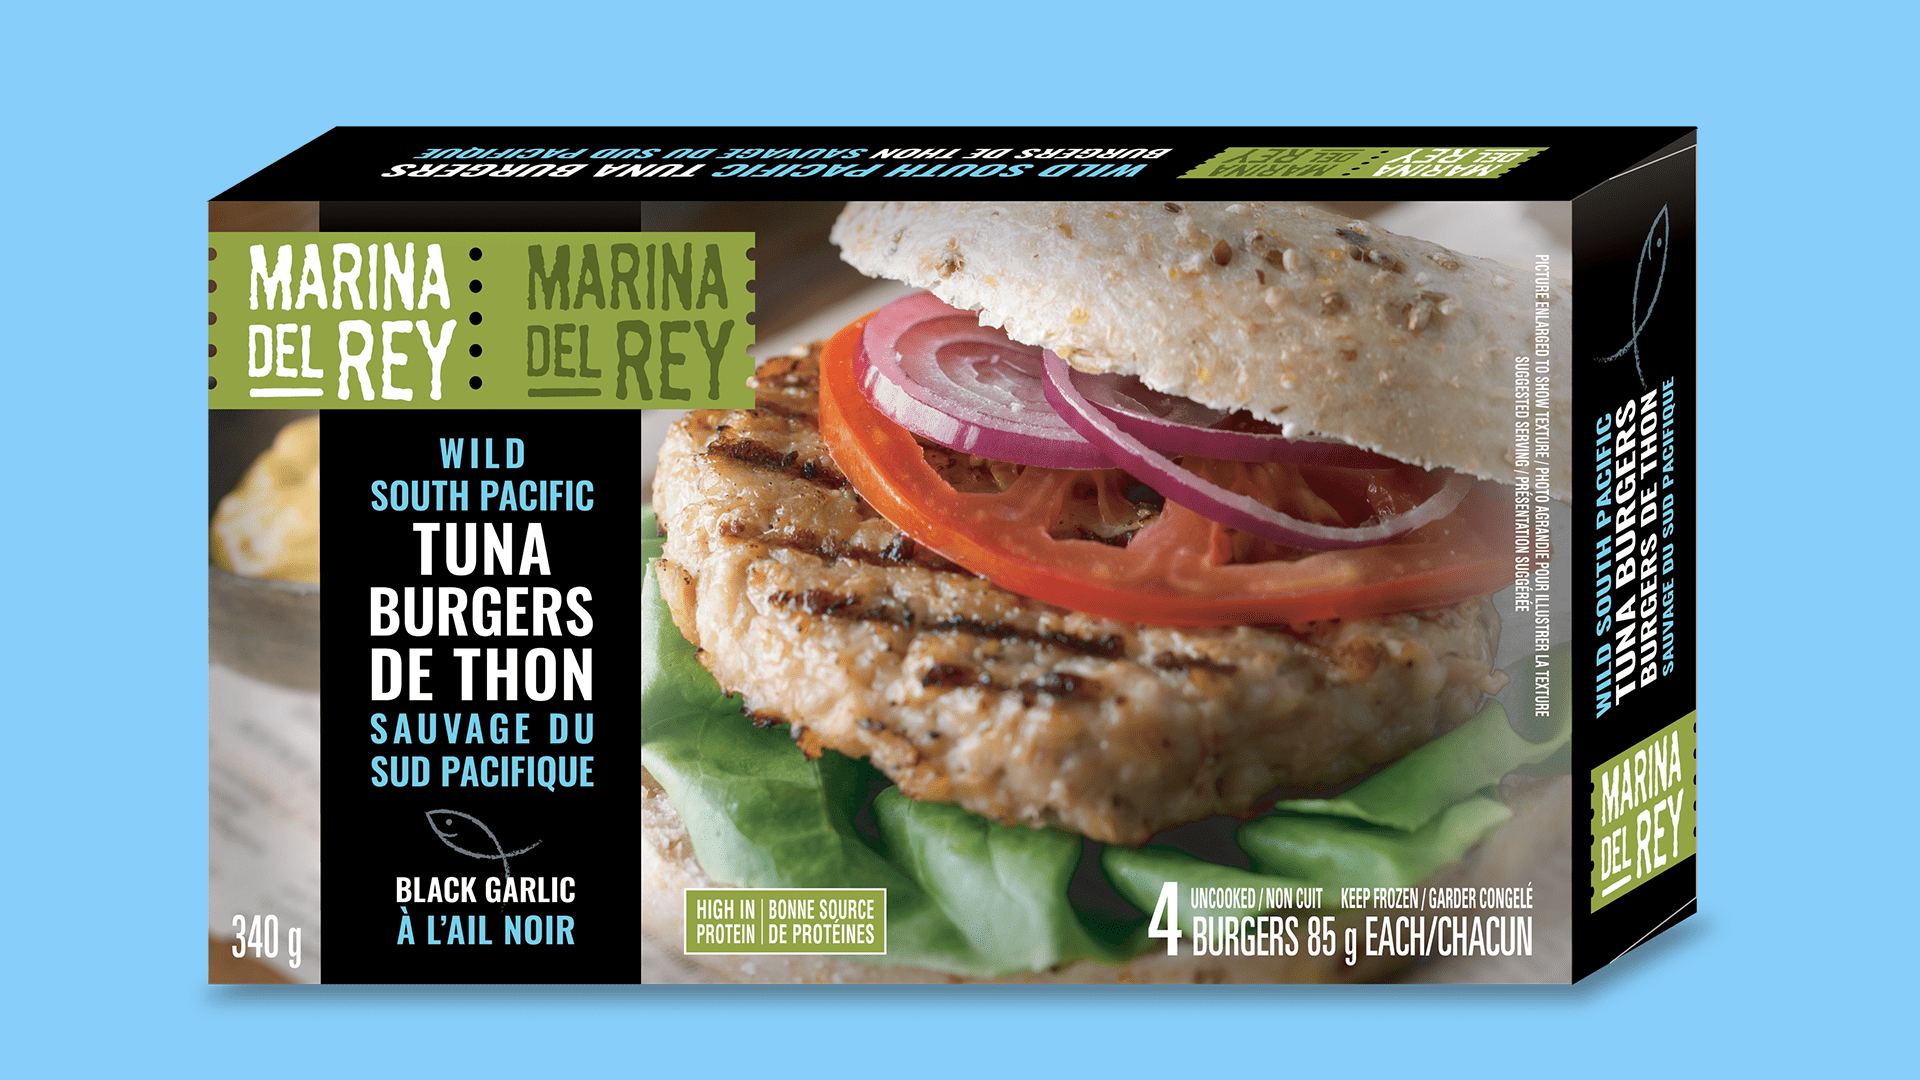 Wild South Pacific Tuna Burgers